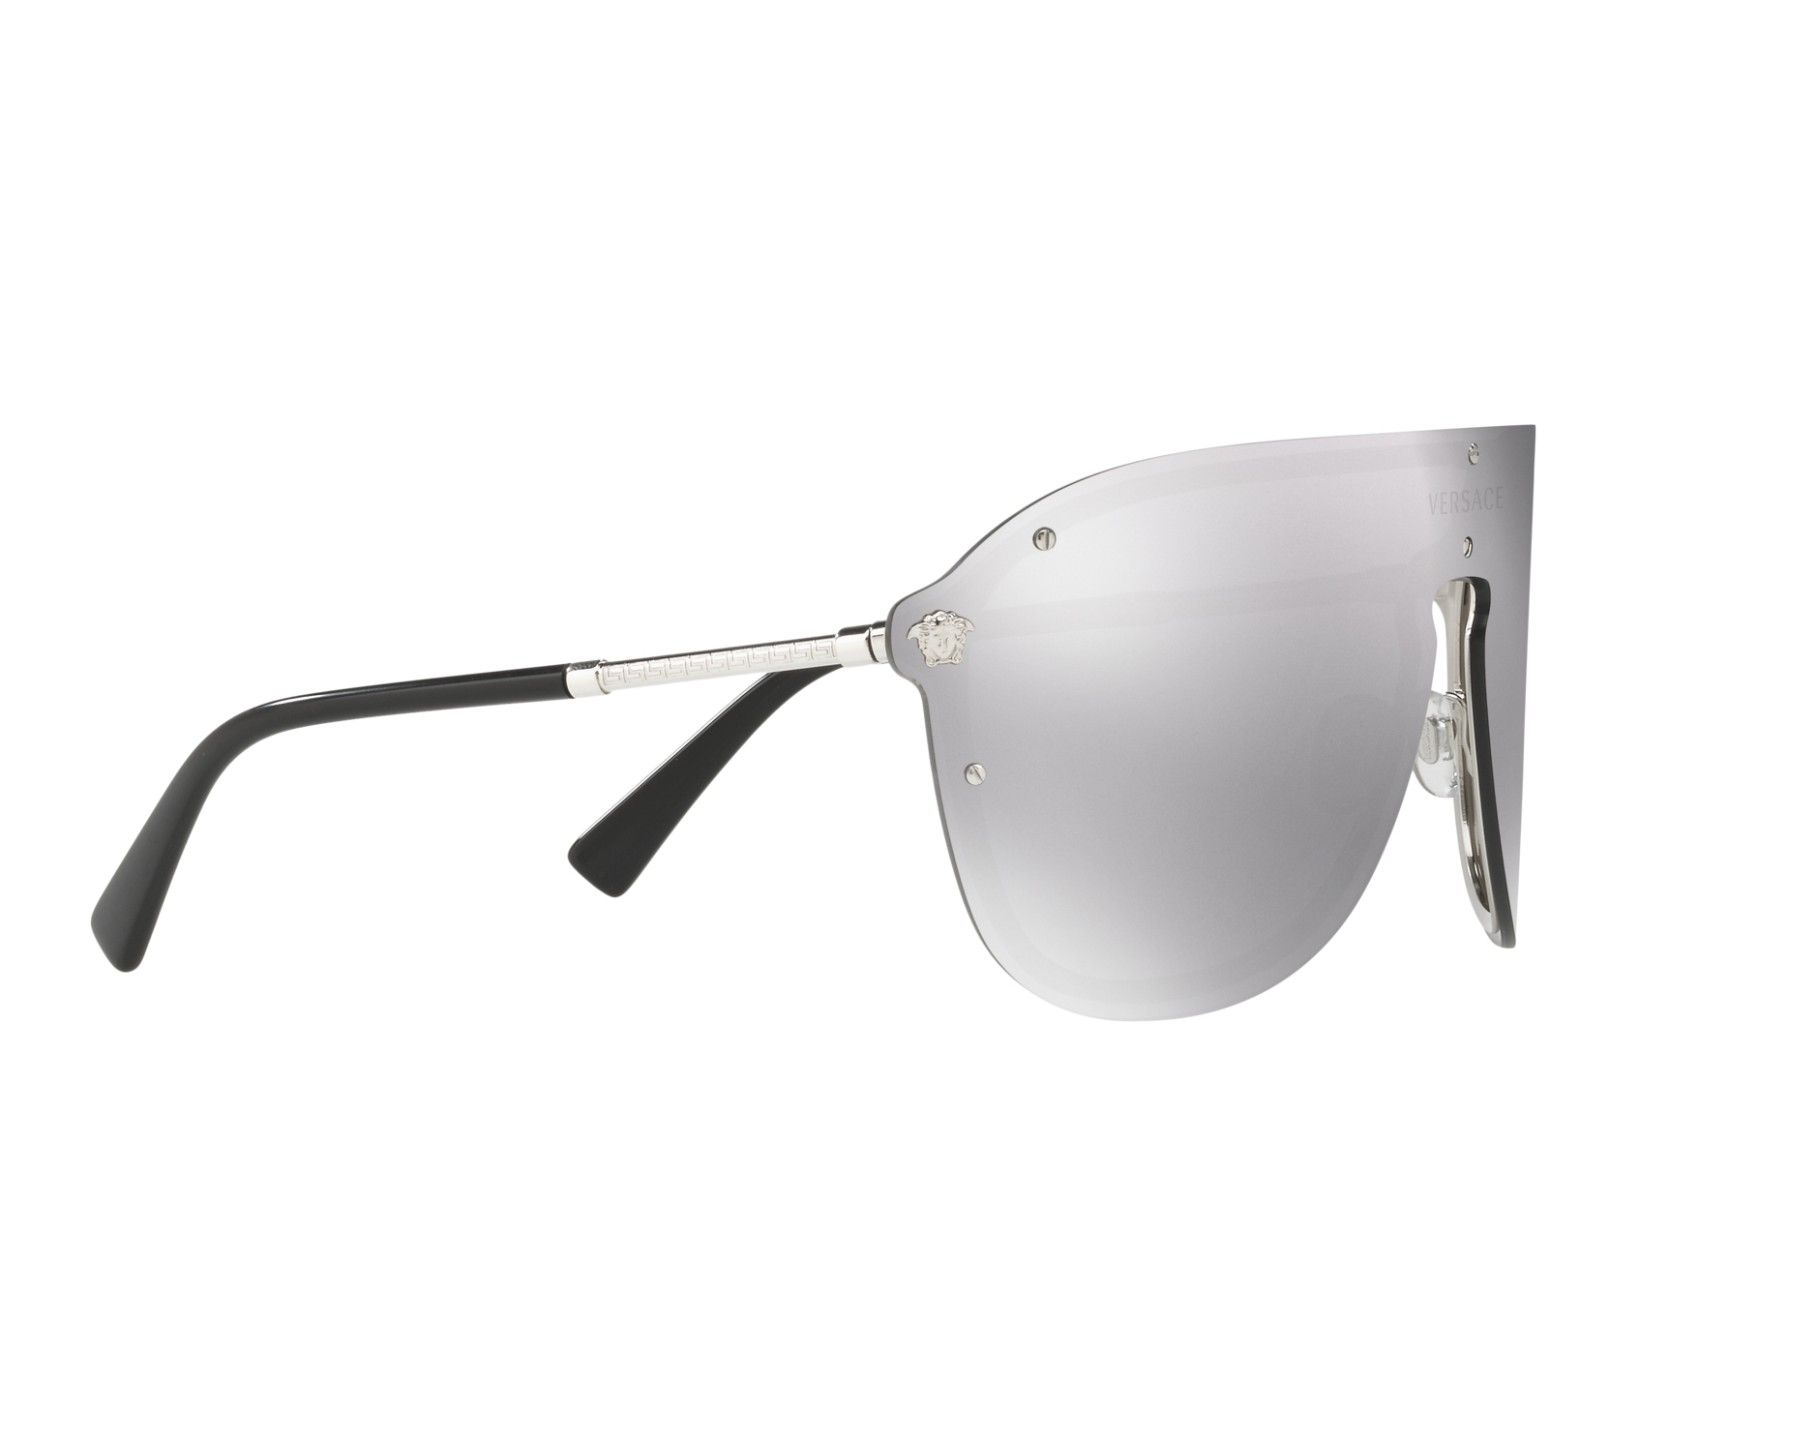 959705aee8 Sunglasses Versace VE-2180 10006G 44- Silver 360 degree view 11